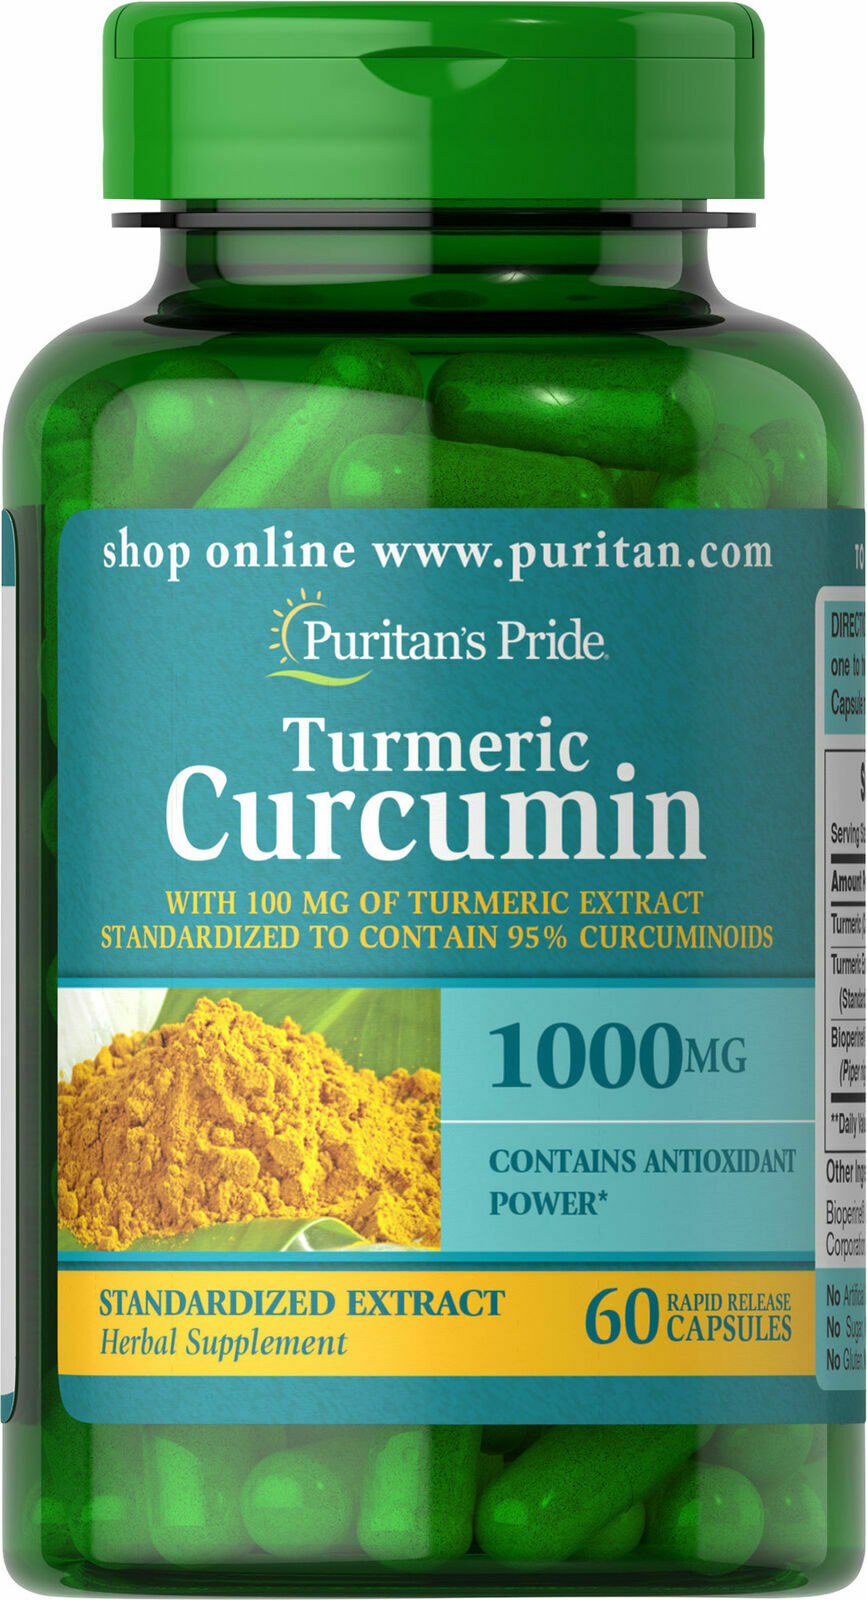 Turmeric Curcumin 1000 mg Standardized Extract with Curcumin